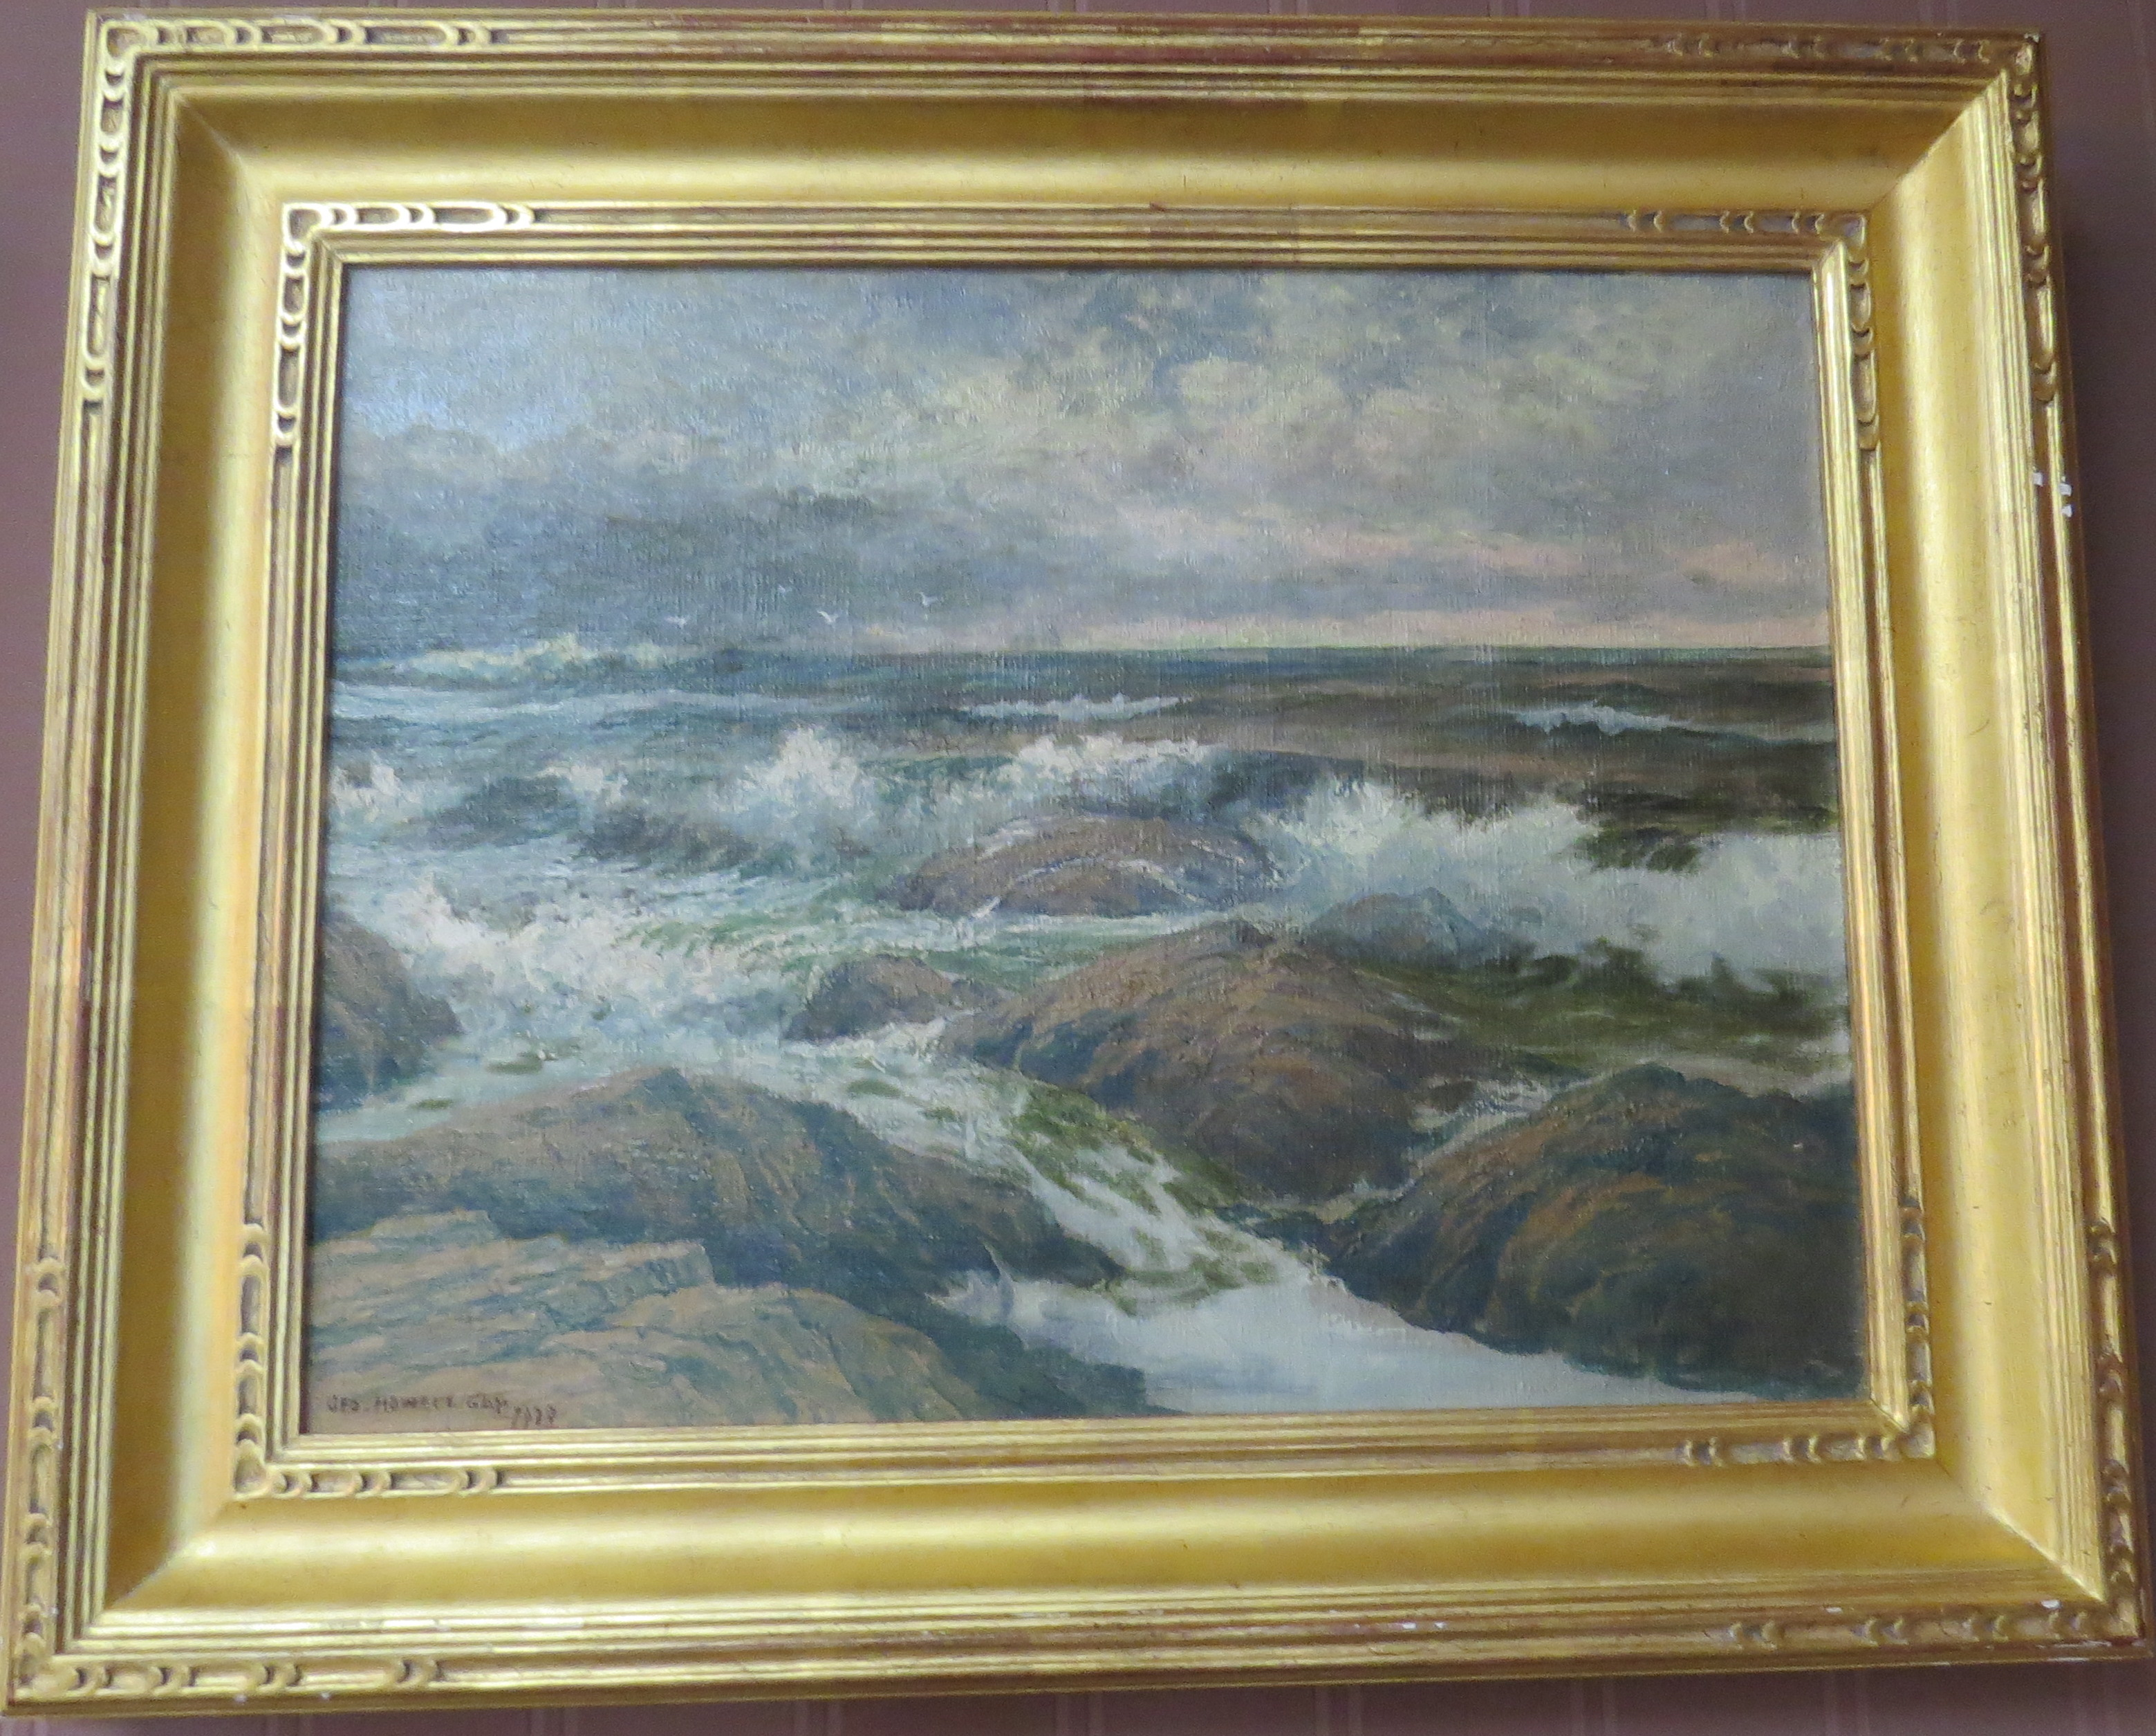 Oil on Canvas of a Coastal Scene, Signed George Howell Gay (American, 1858-1931)